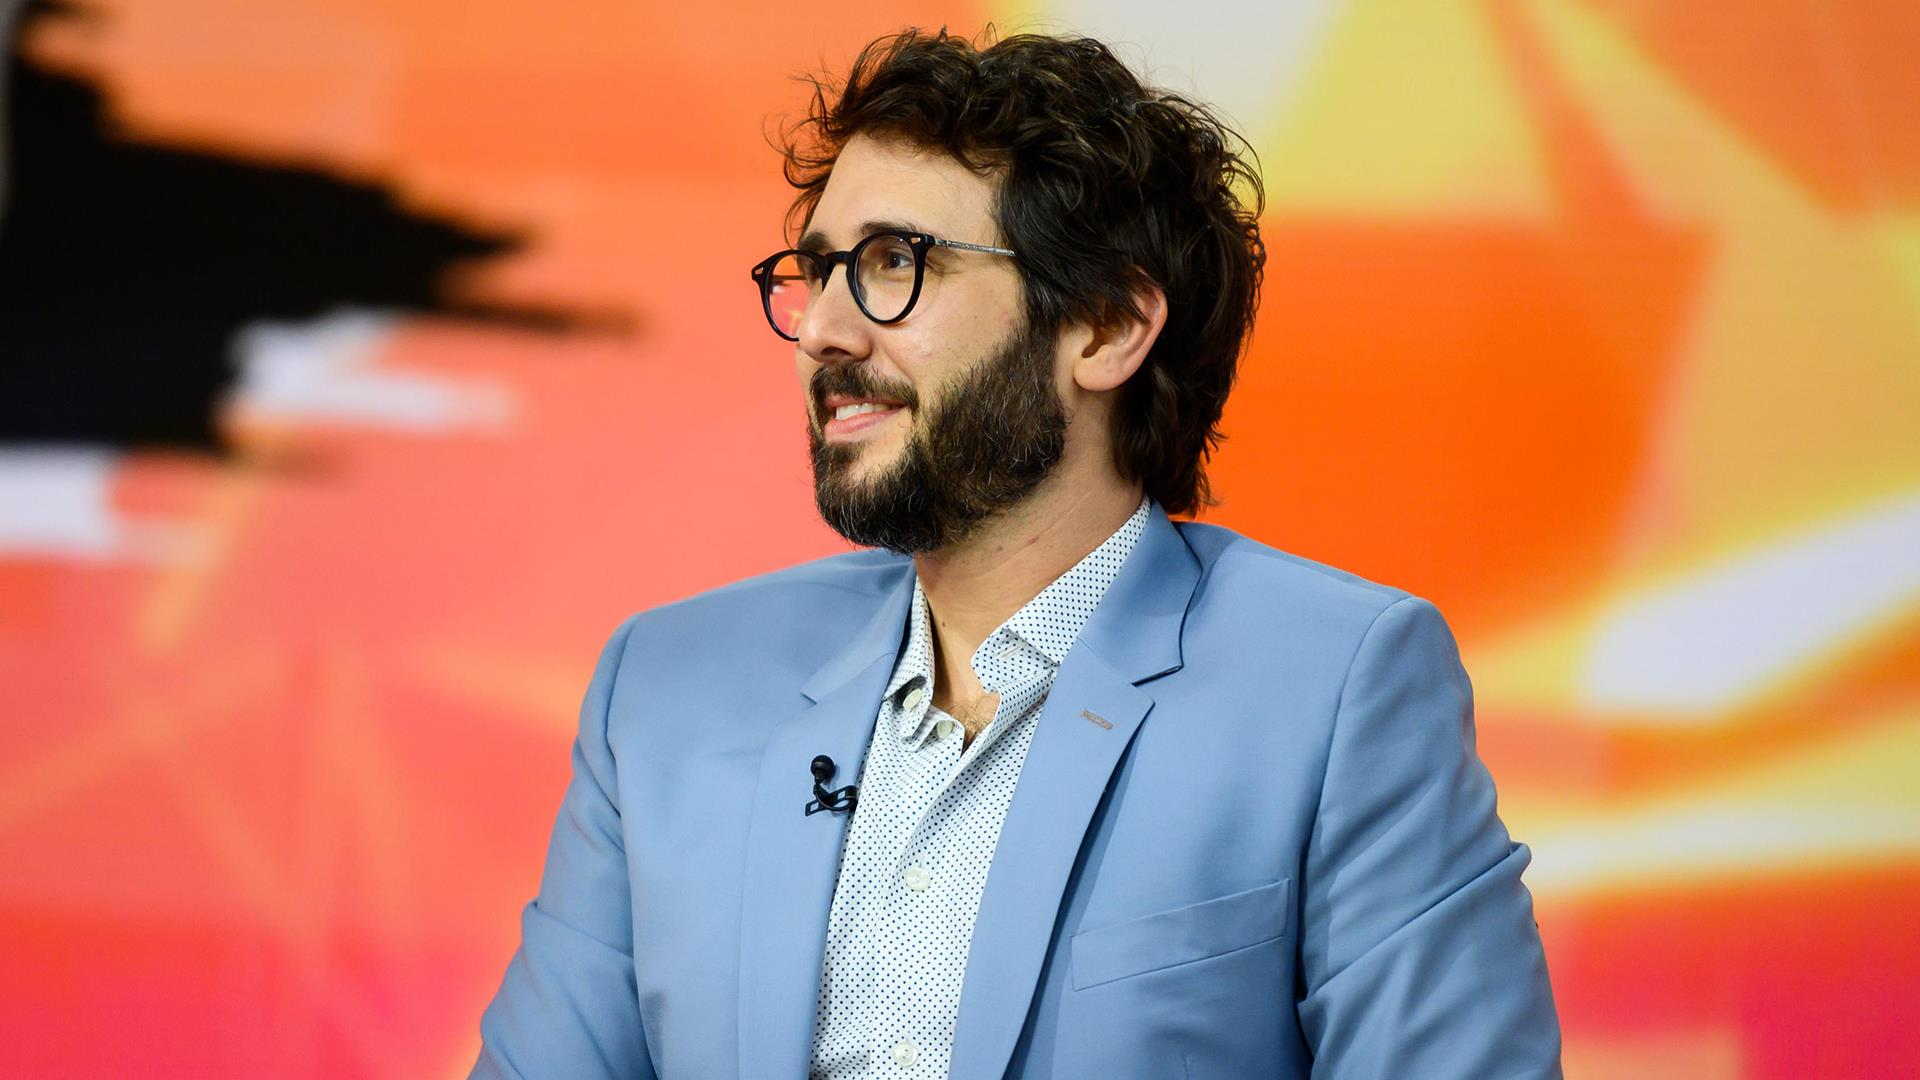 Josh Groban Recalls Special Moment He Performed For 1st Time There are no critic reviews yet for josh groban live: josh groban recalls special moment he